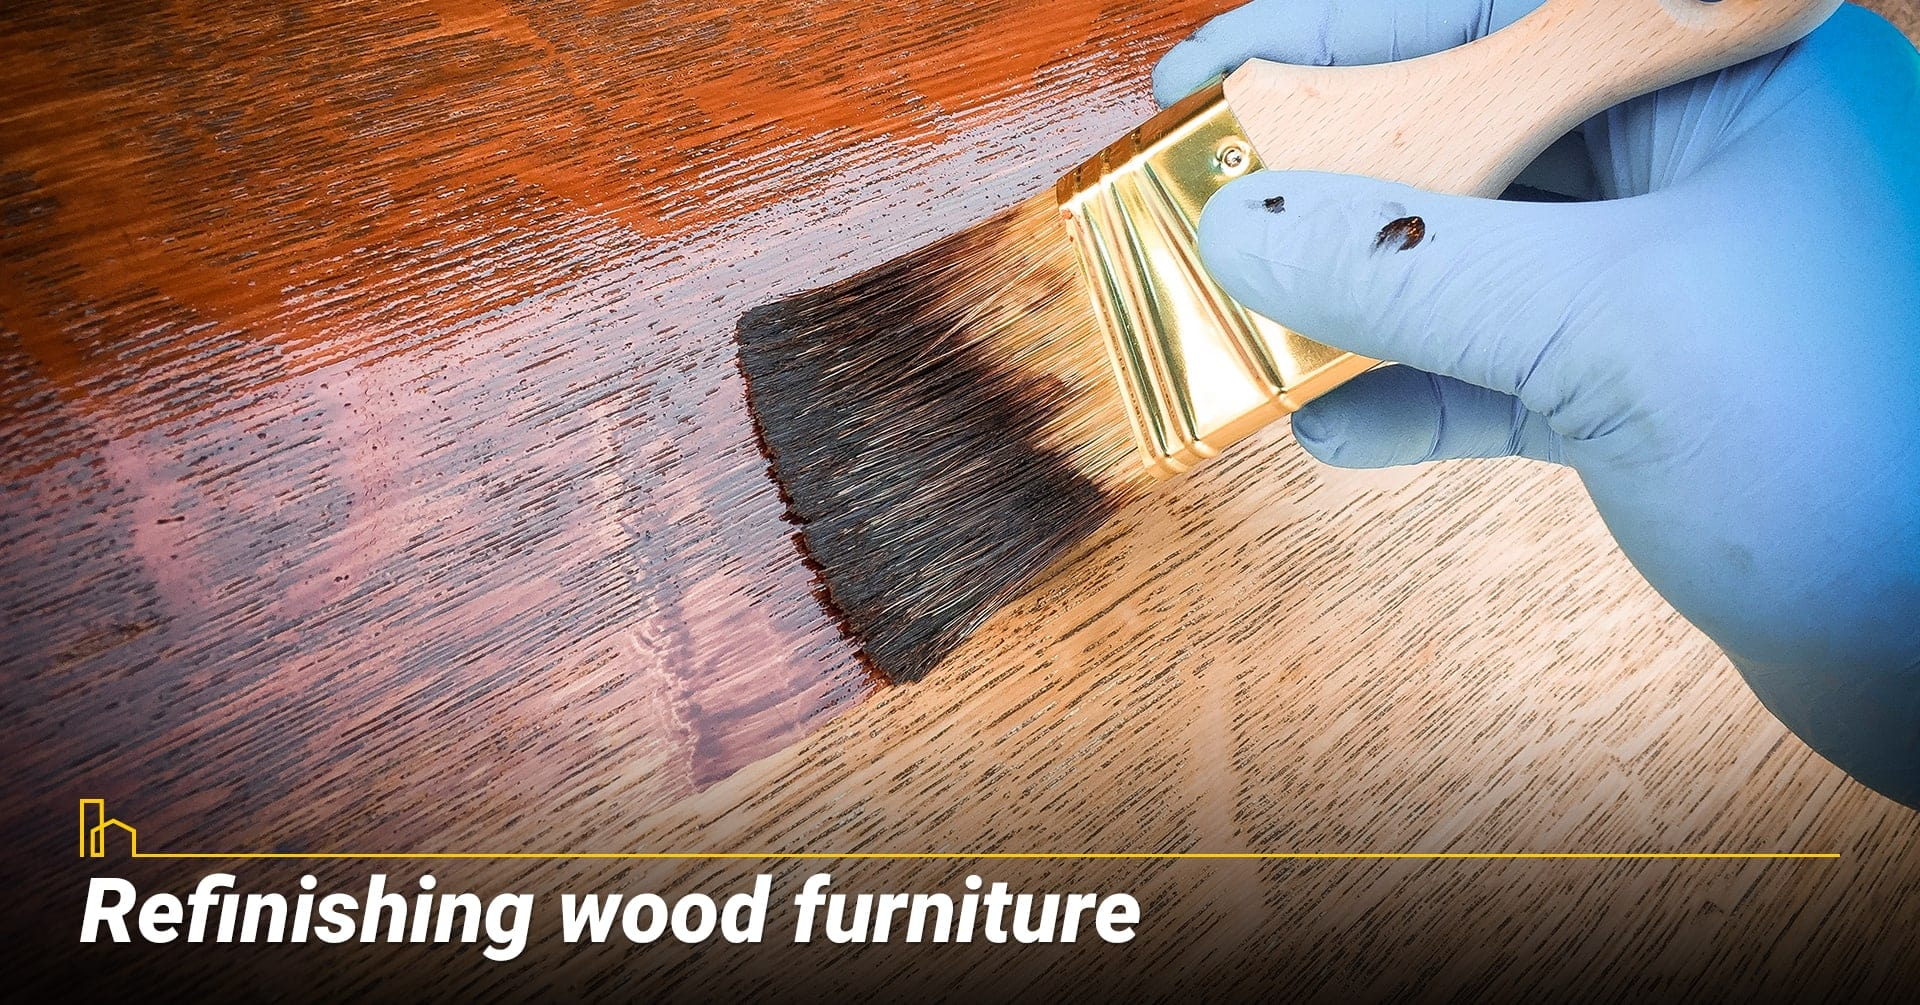 Refinishing wood furniture, give your furniture a new coat of paint